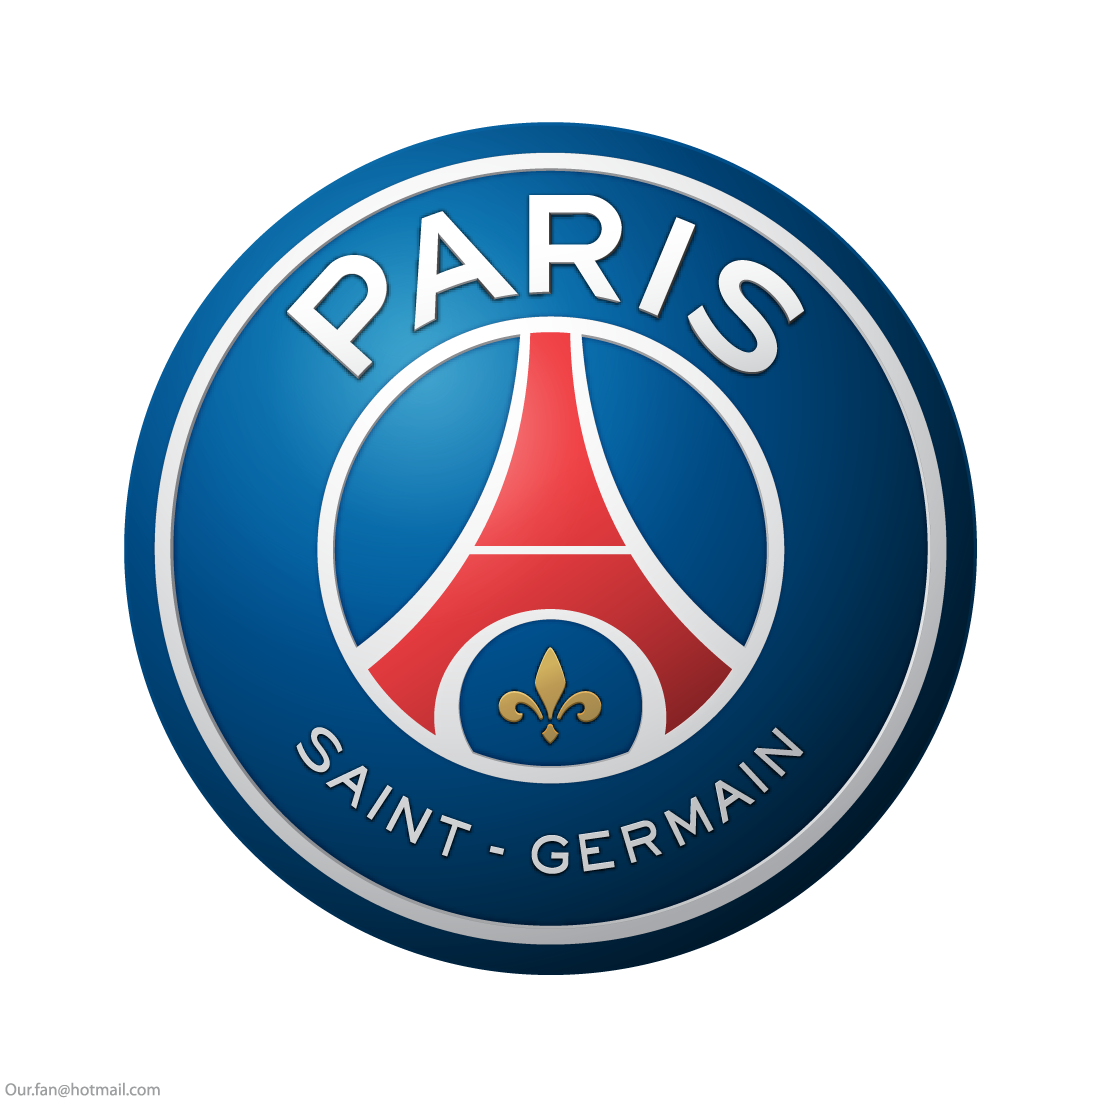 psg-logo-escudo-paris-saint-germain-3